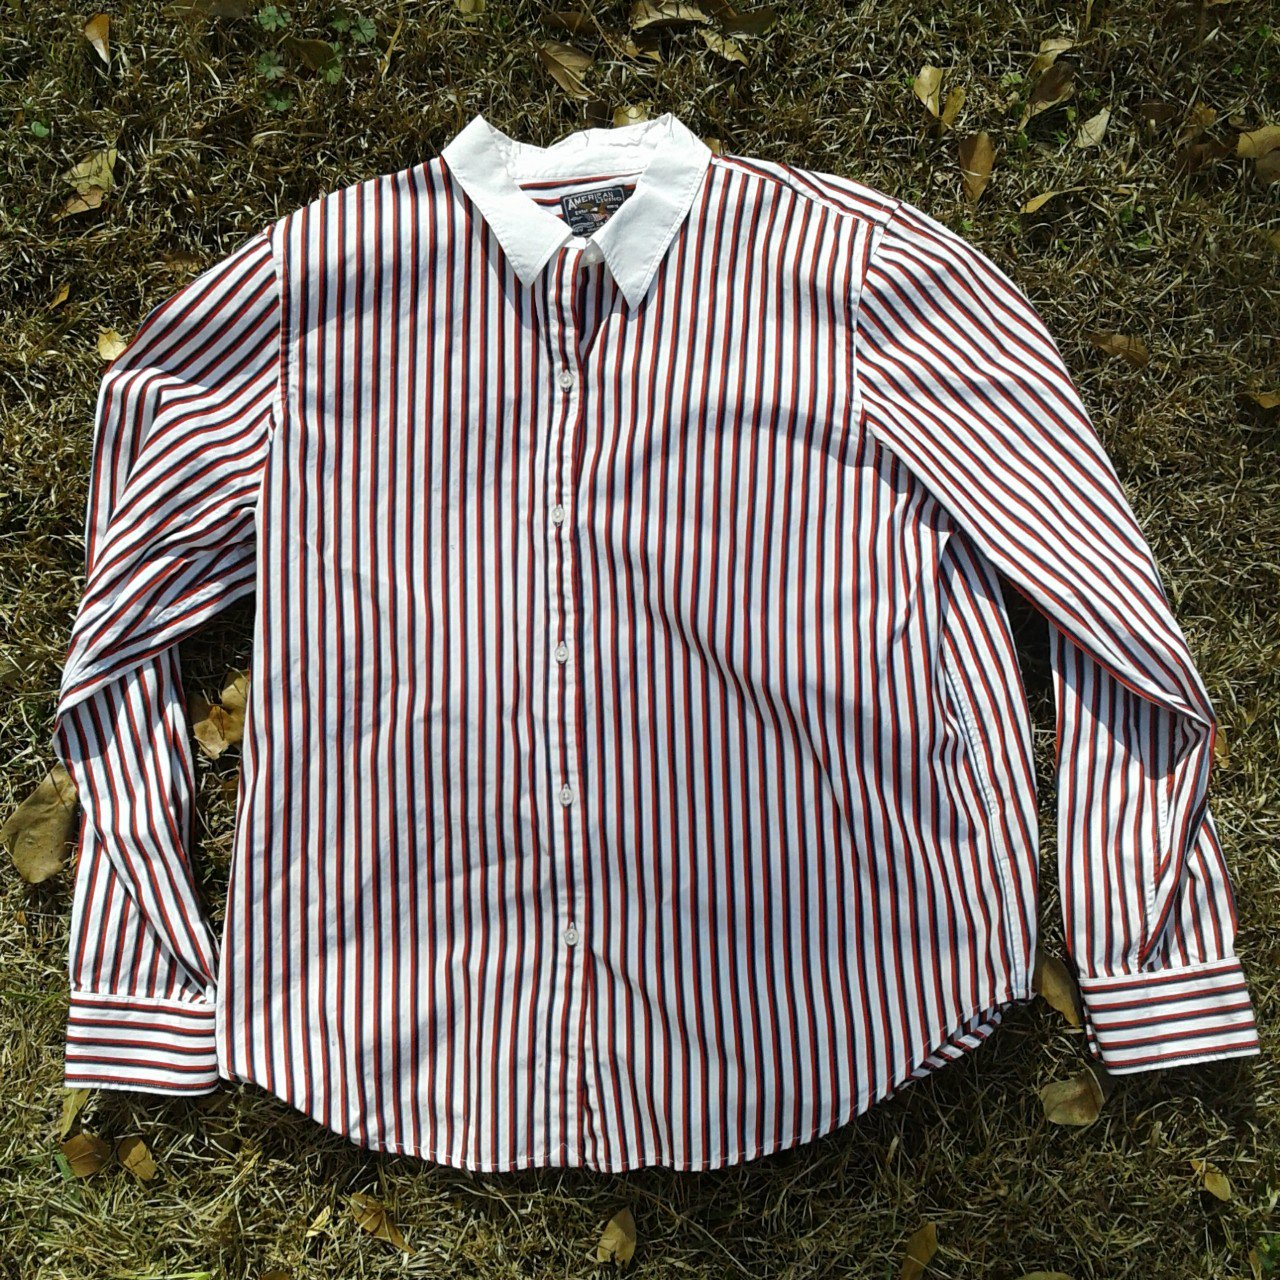 American Living Button Up Size Xl Chest Laying Flat For A Depop